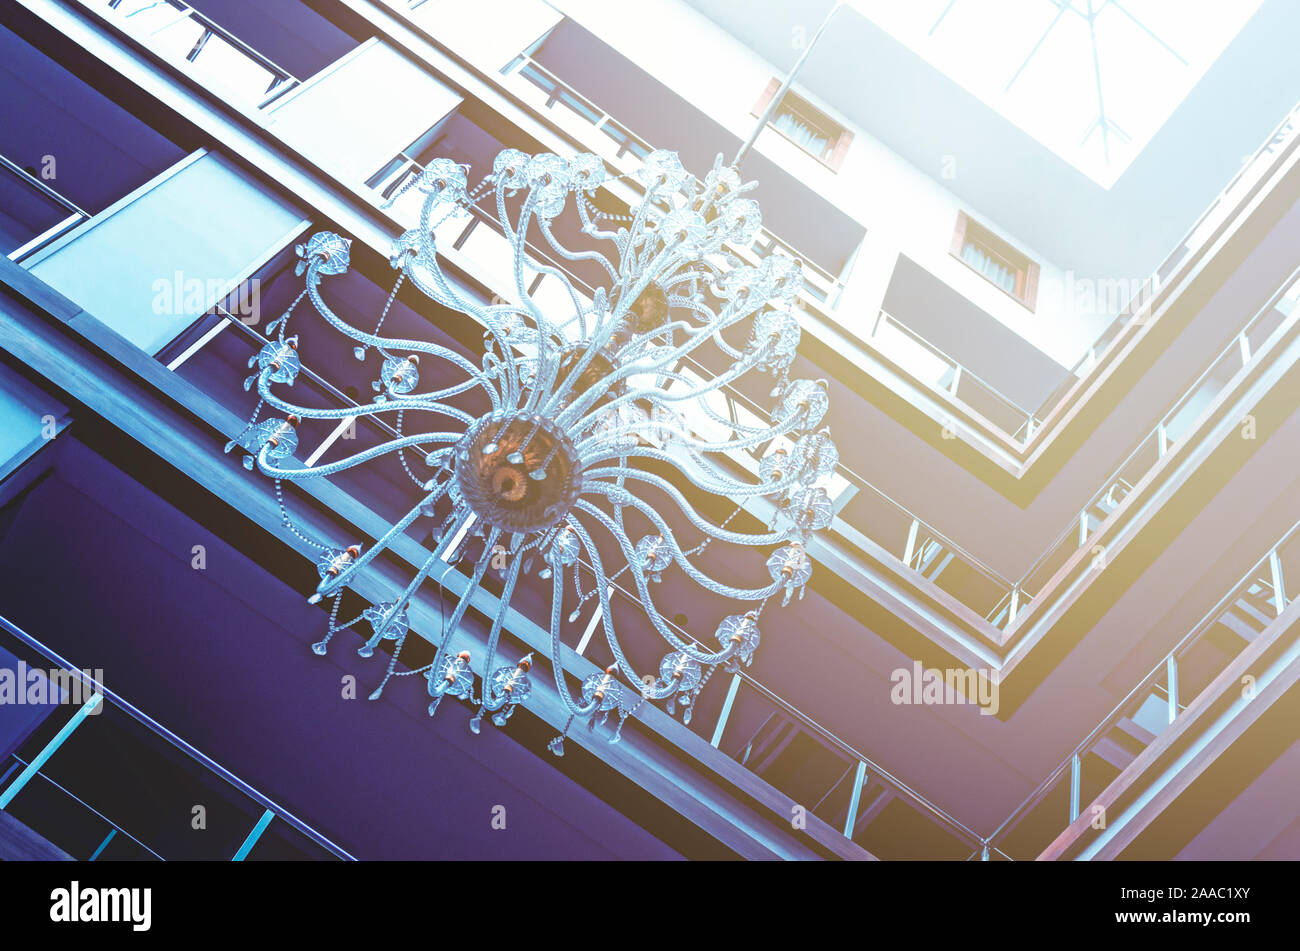 Details Of The Interior Of A Modern Hotel And Its Roof From The Inside Stock Photo Alamy